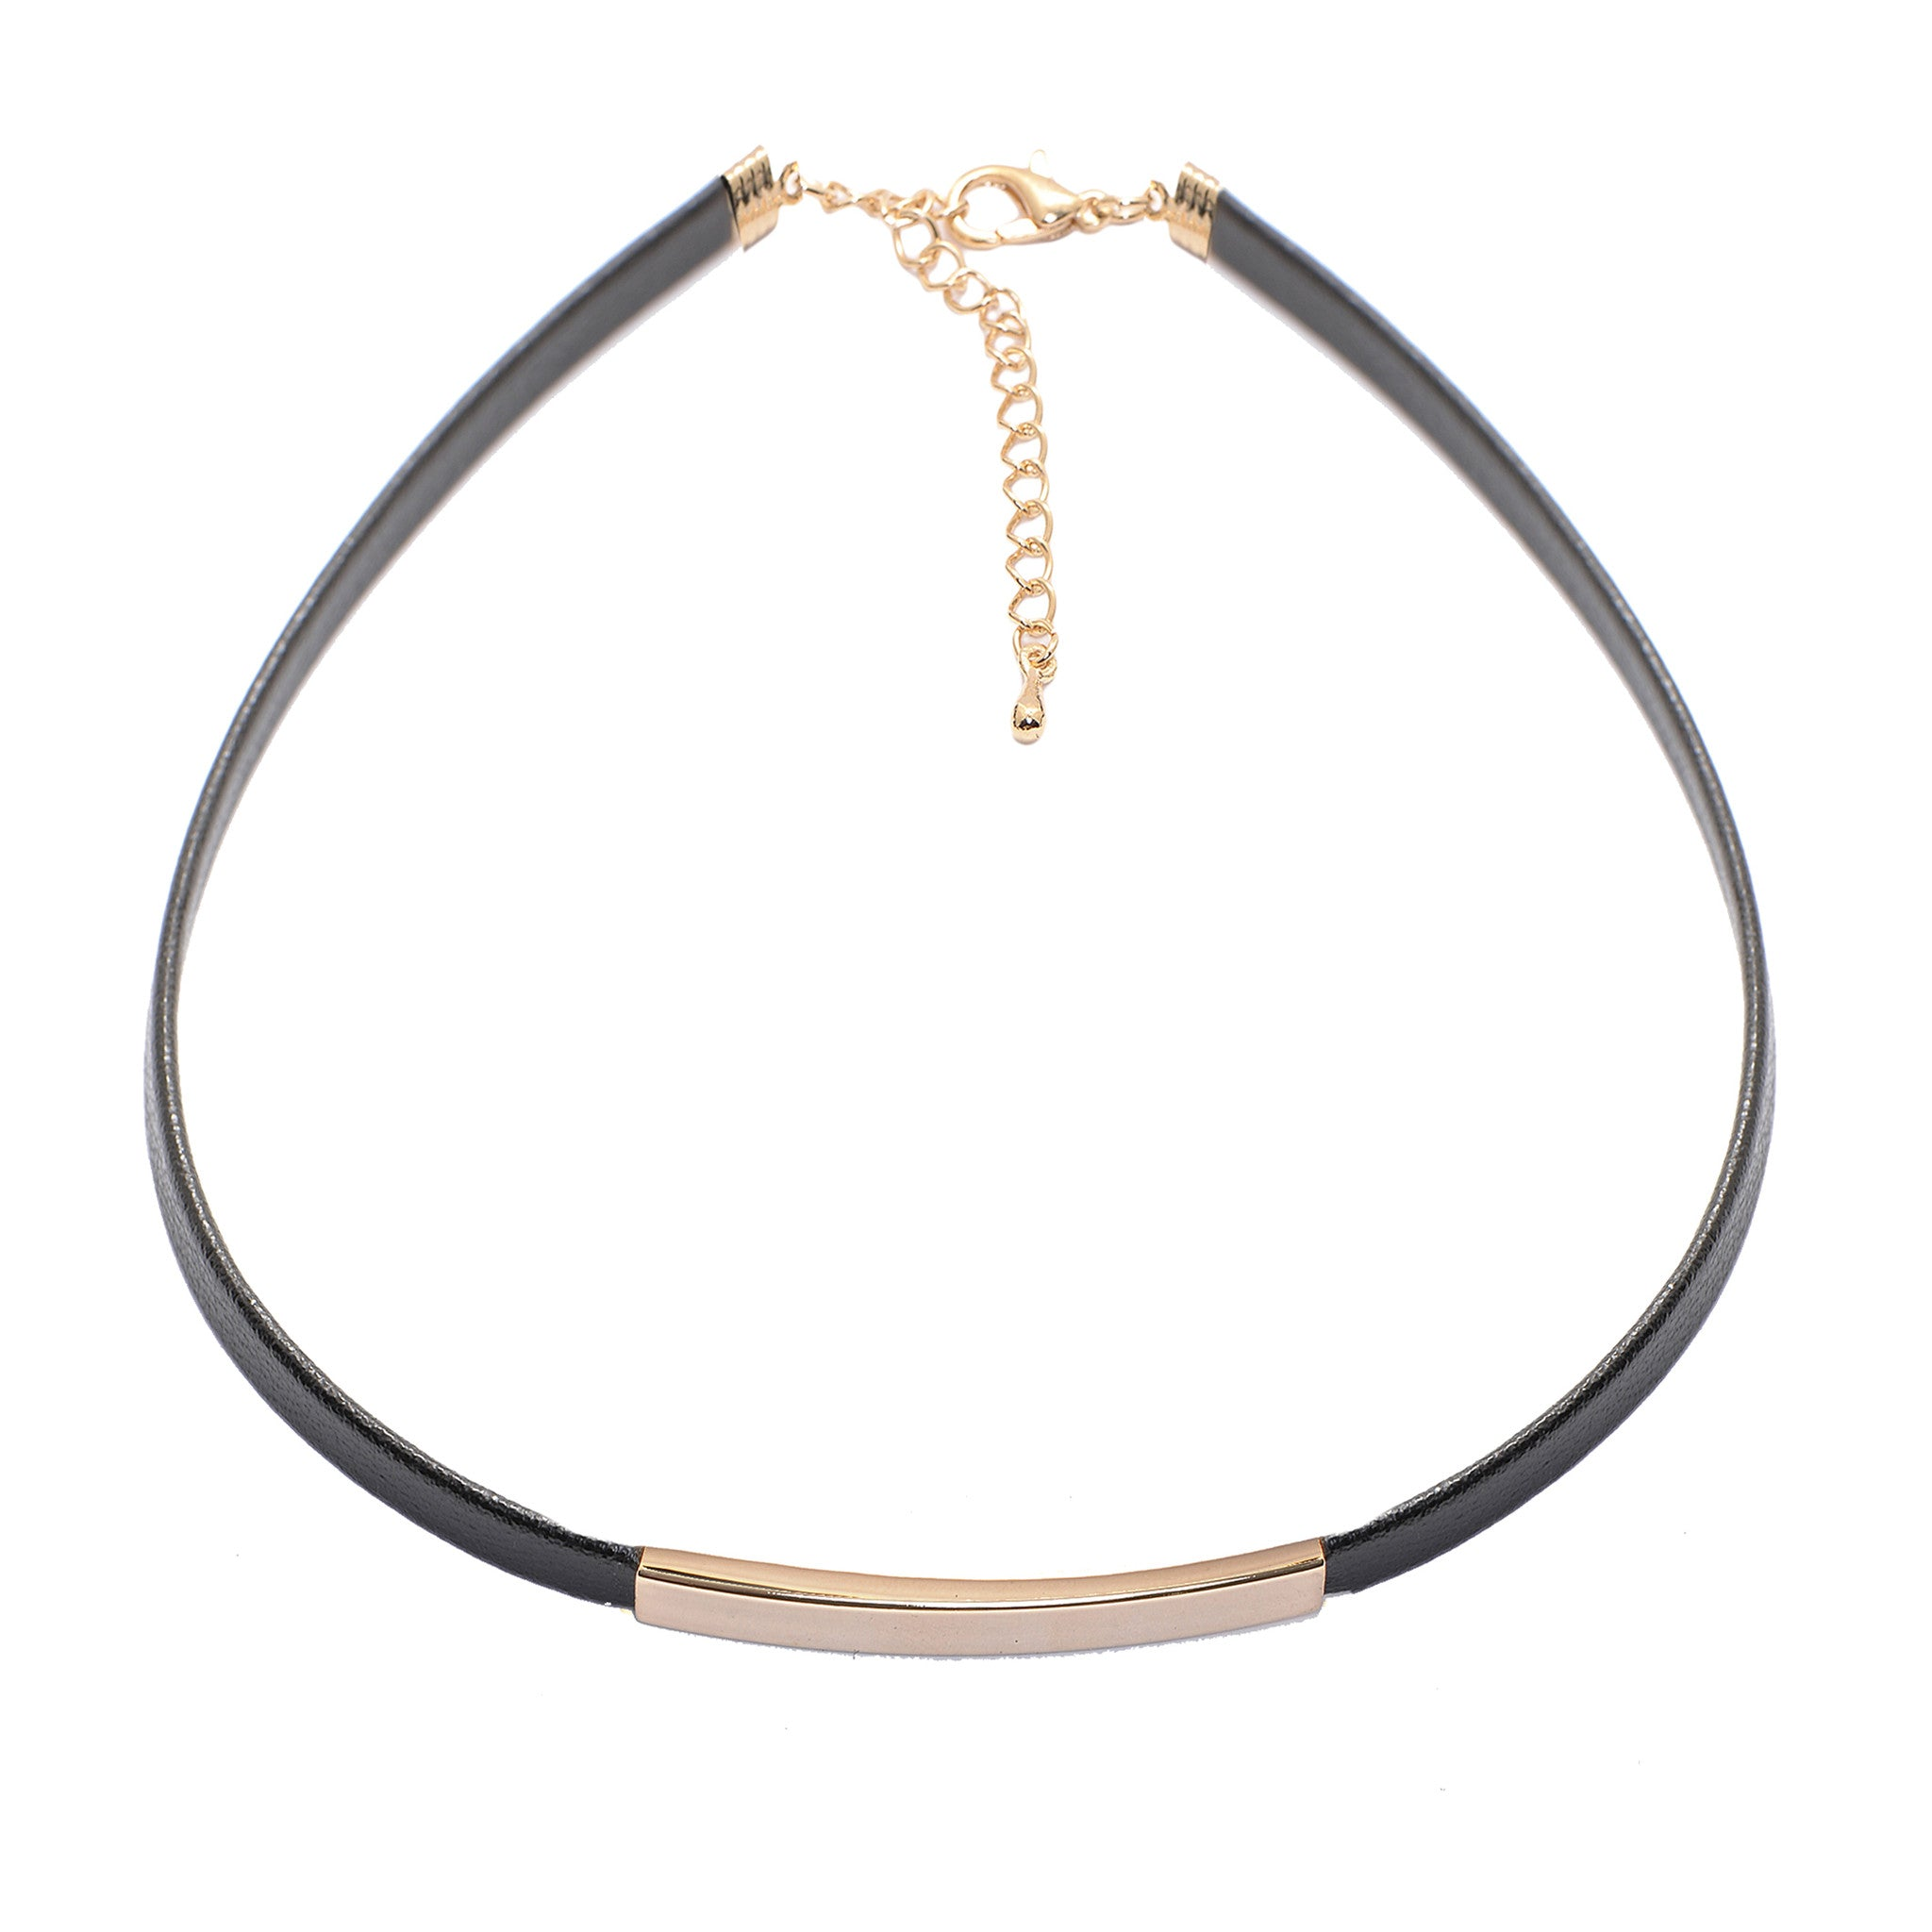 8acc93a4f2ceb Sliding Bar with Skinny Black Leather Choker Necklace